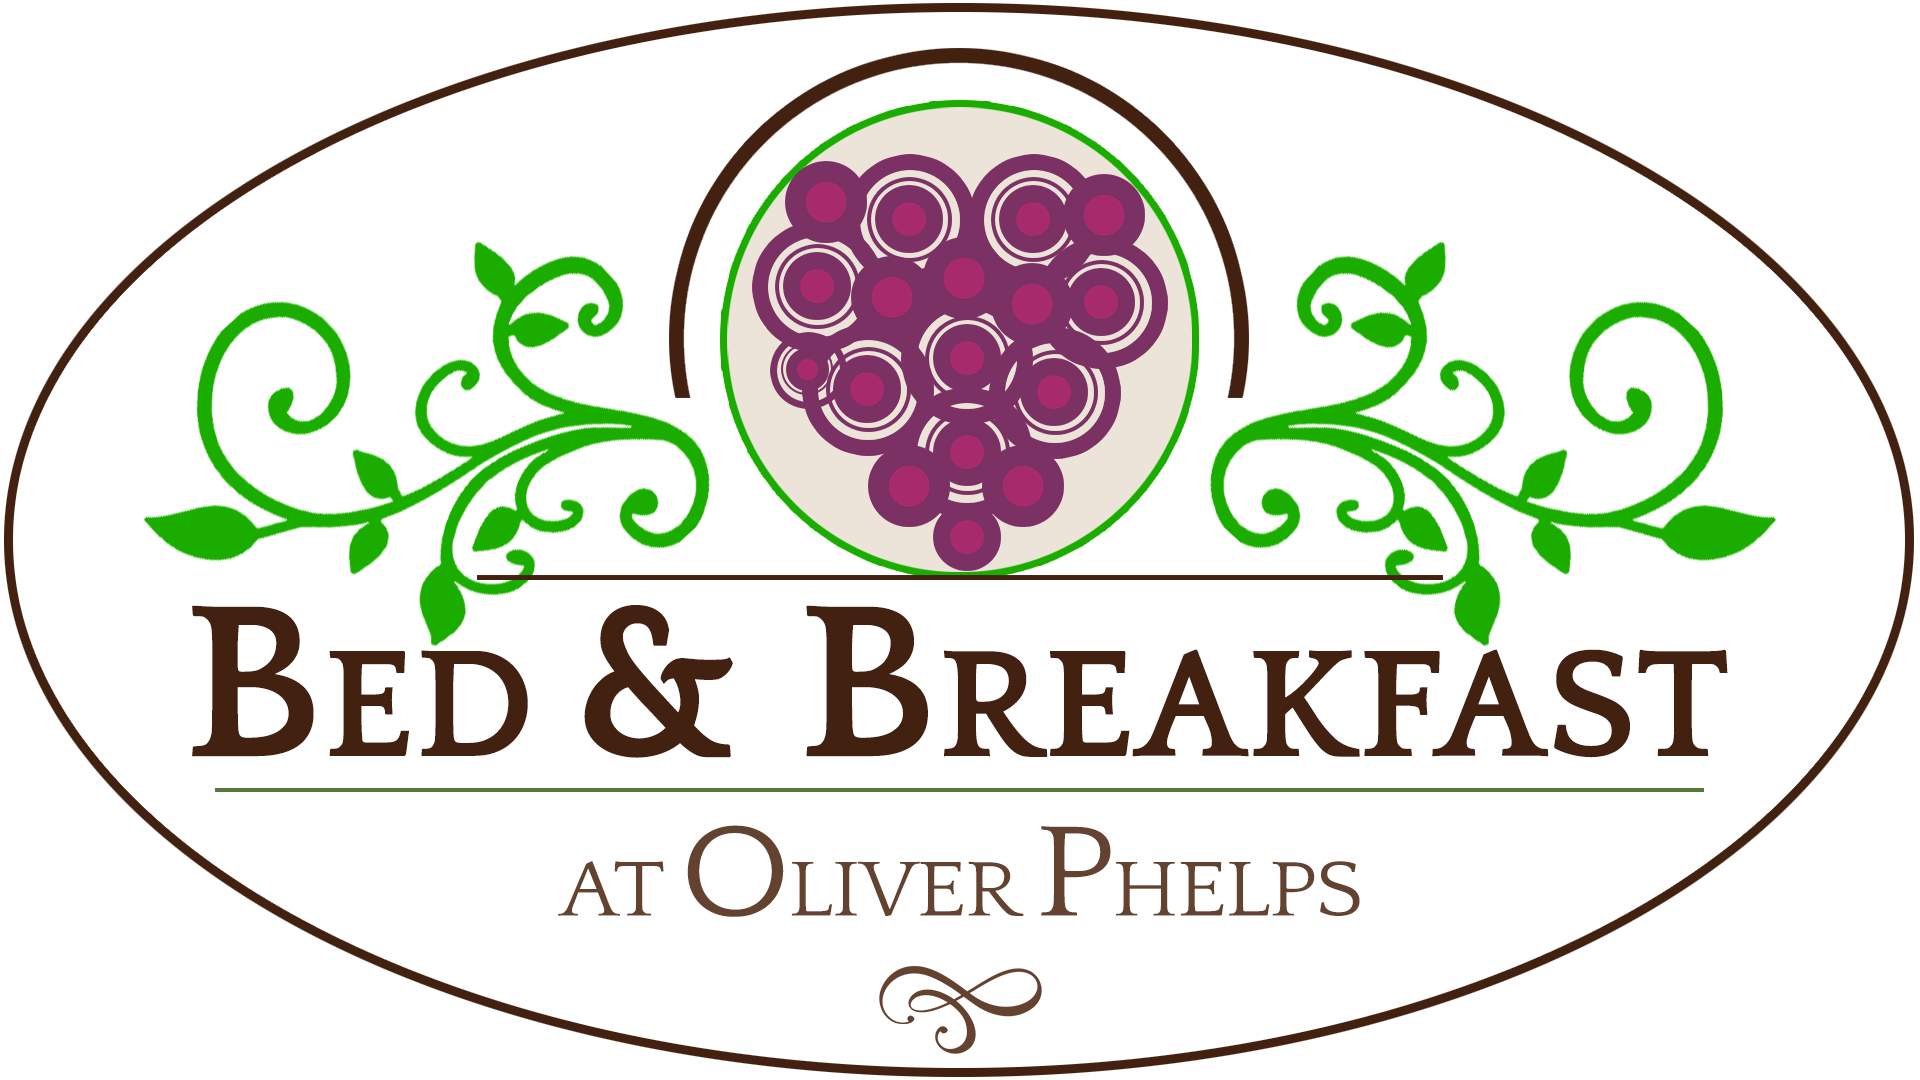 Bed & Breakfast at Oliver Phelps